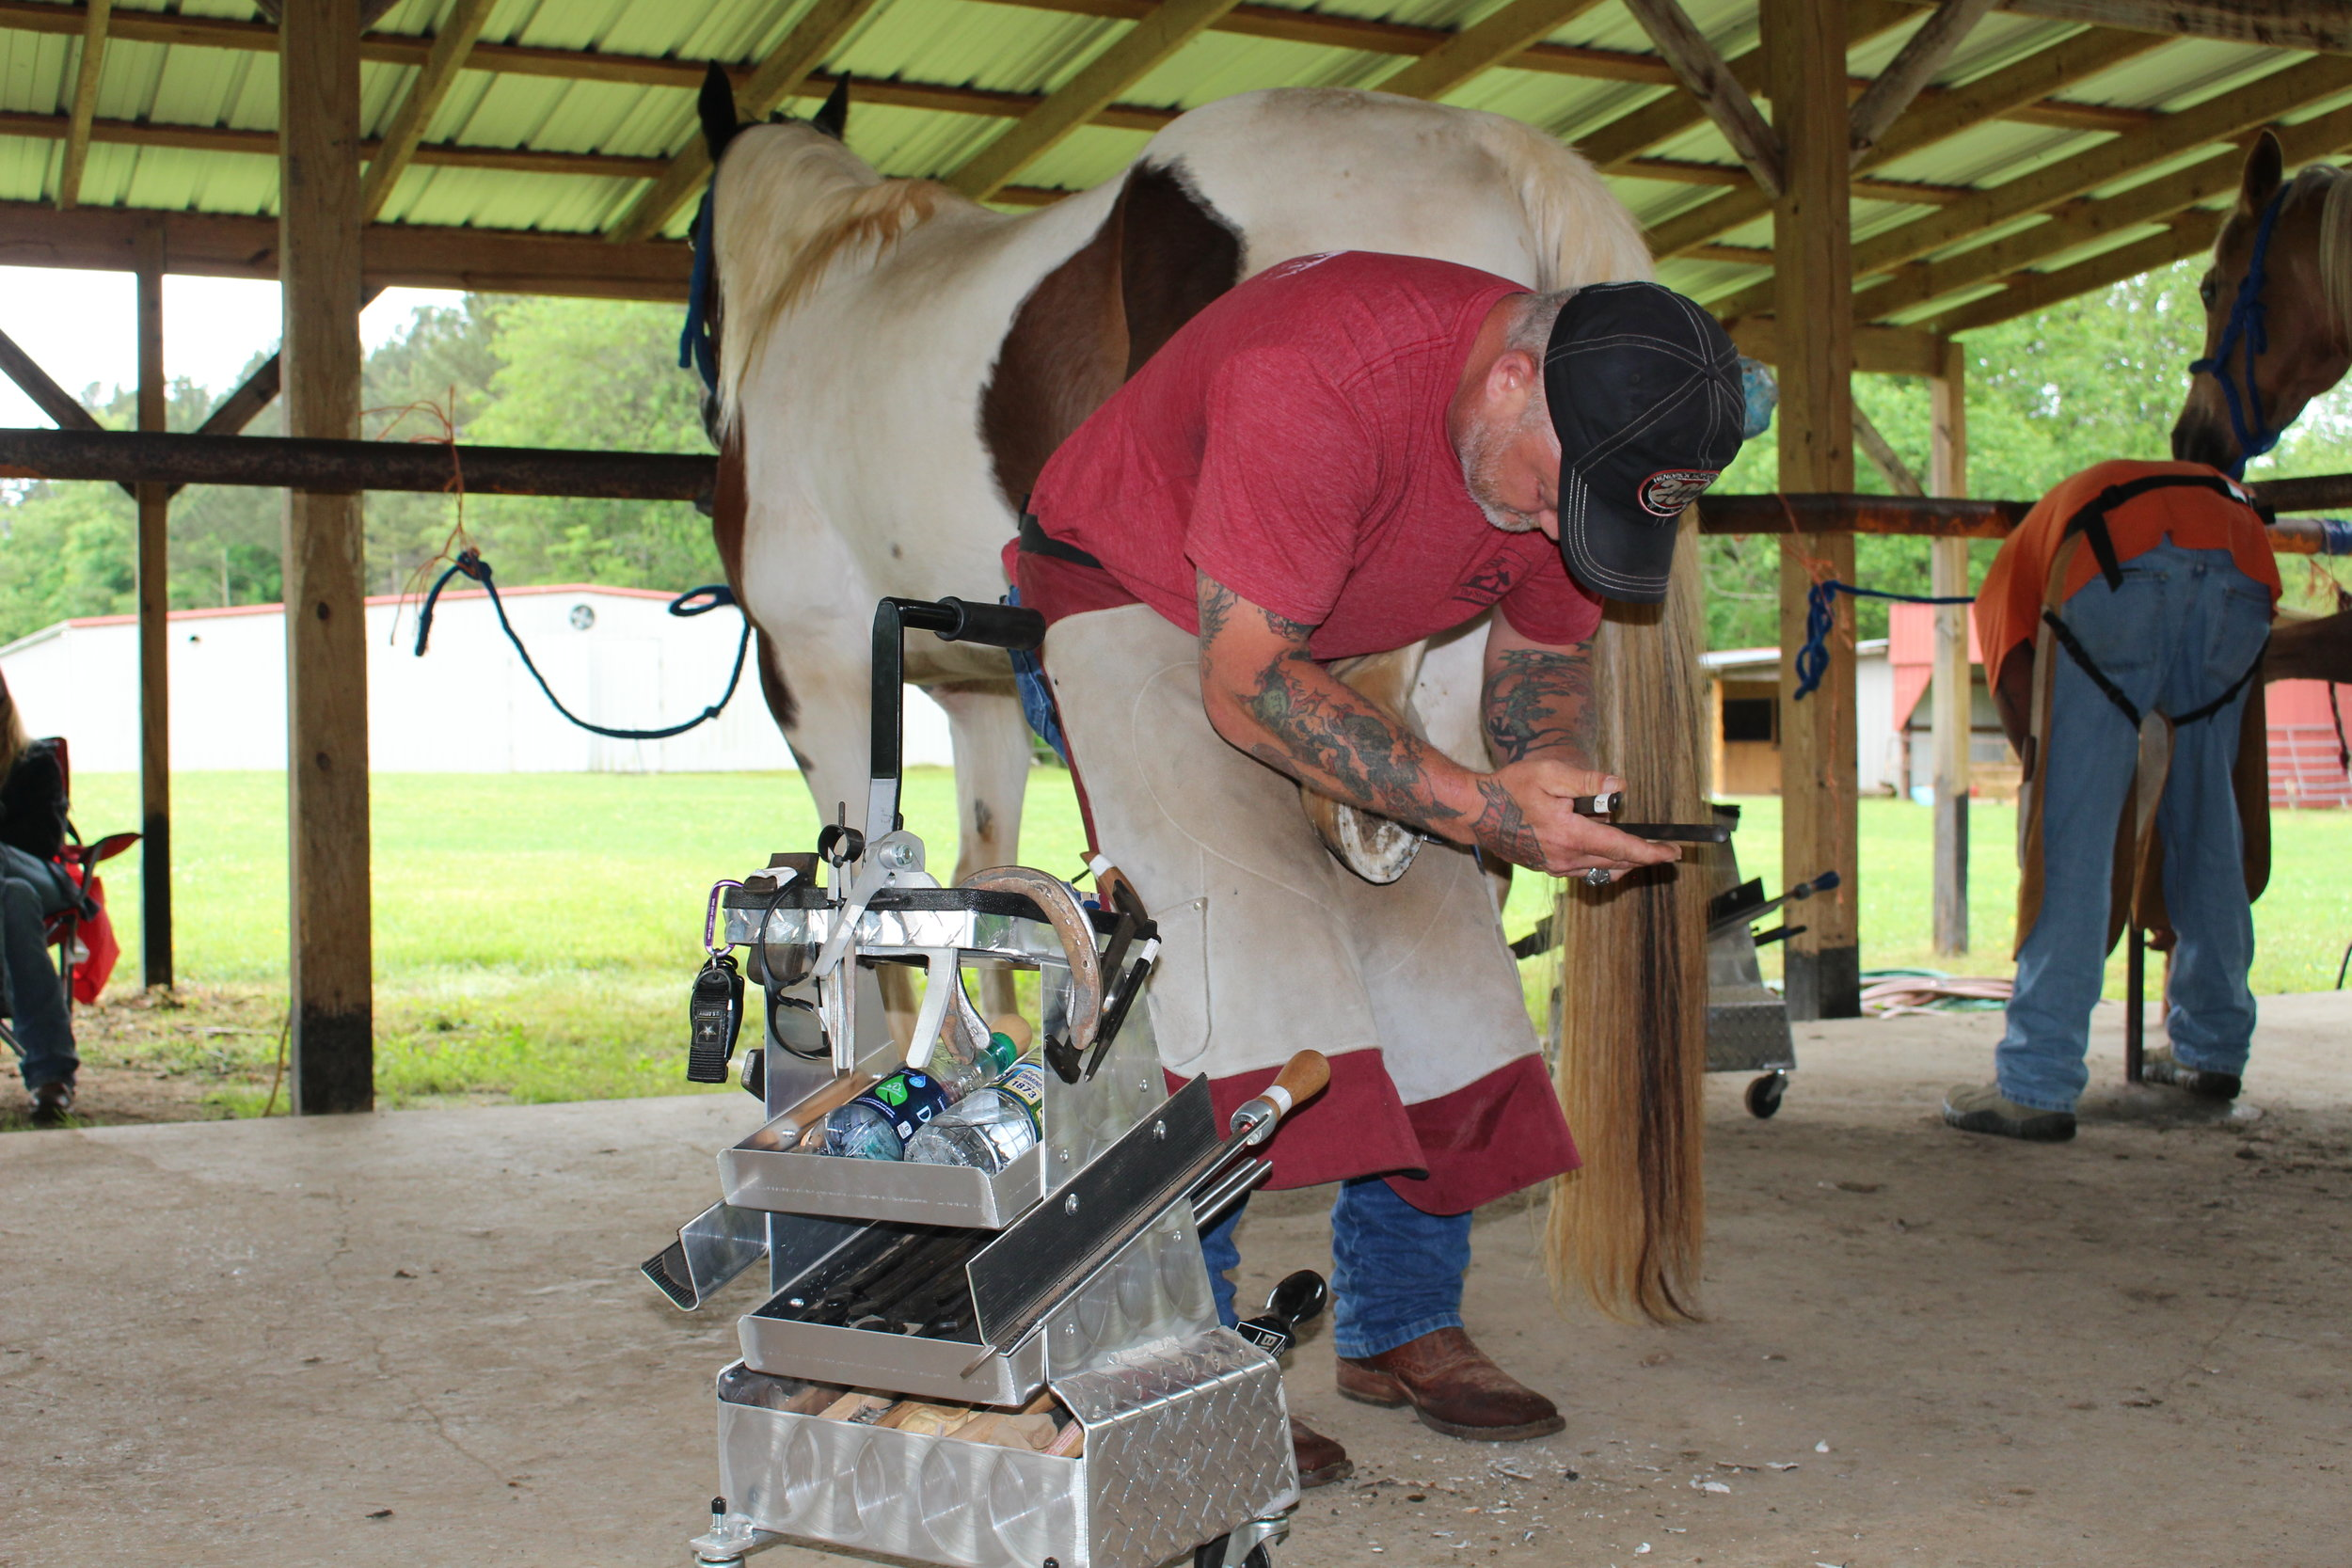 Casey & Son Horseshoeing School of Georgia farrier students shoeing, Link Casey, Owner, Instructor